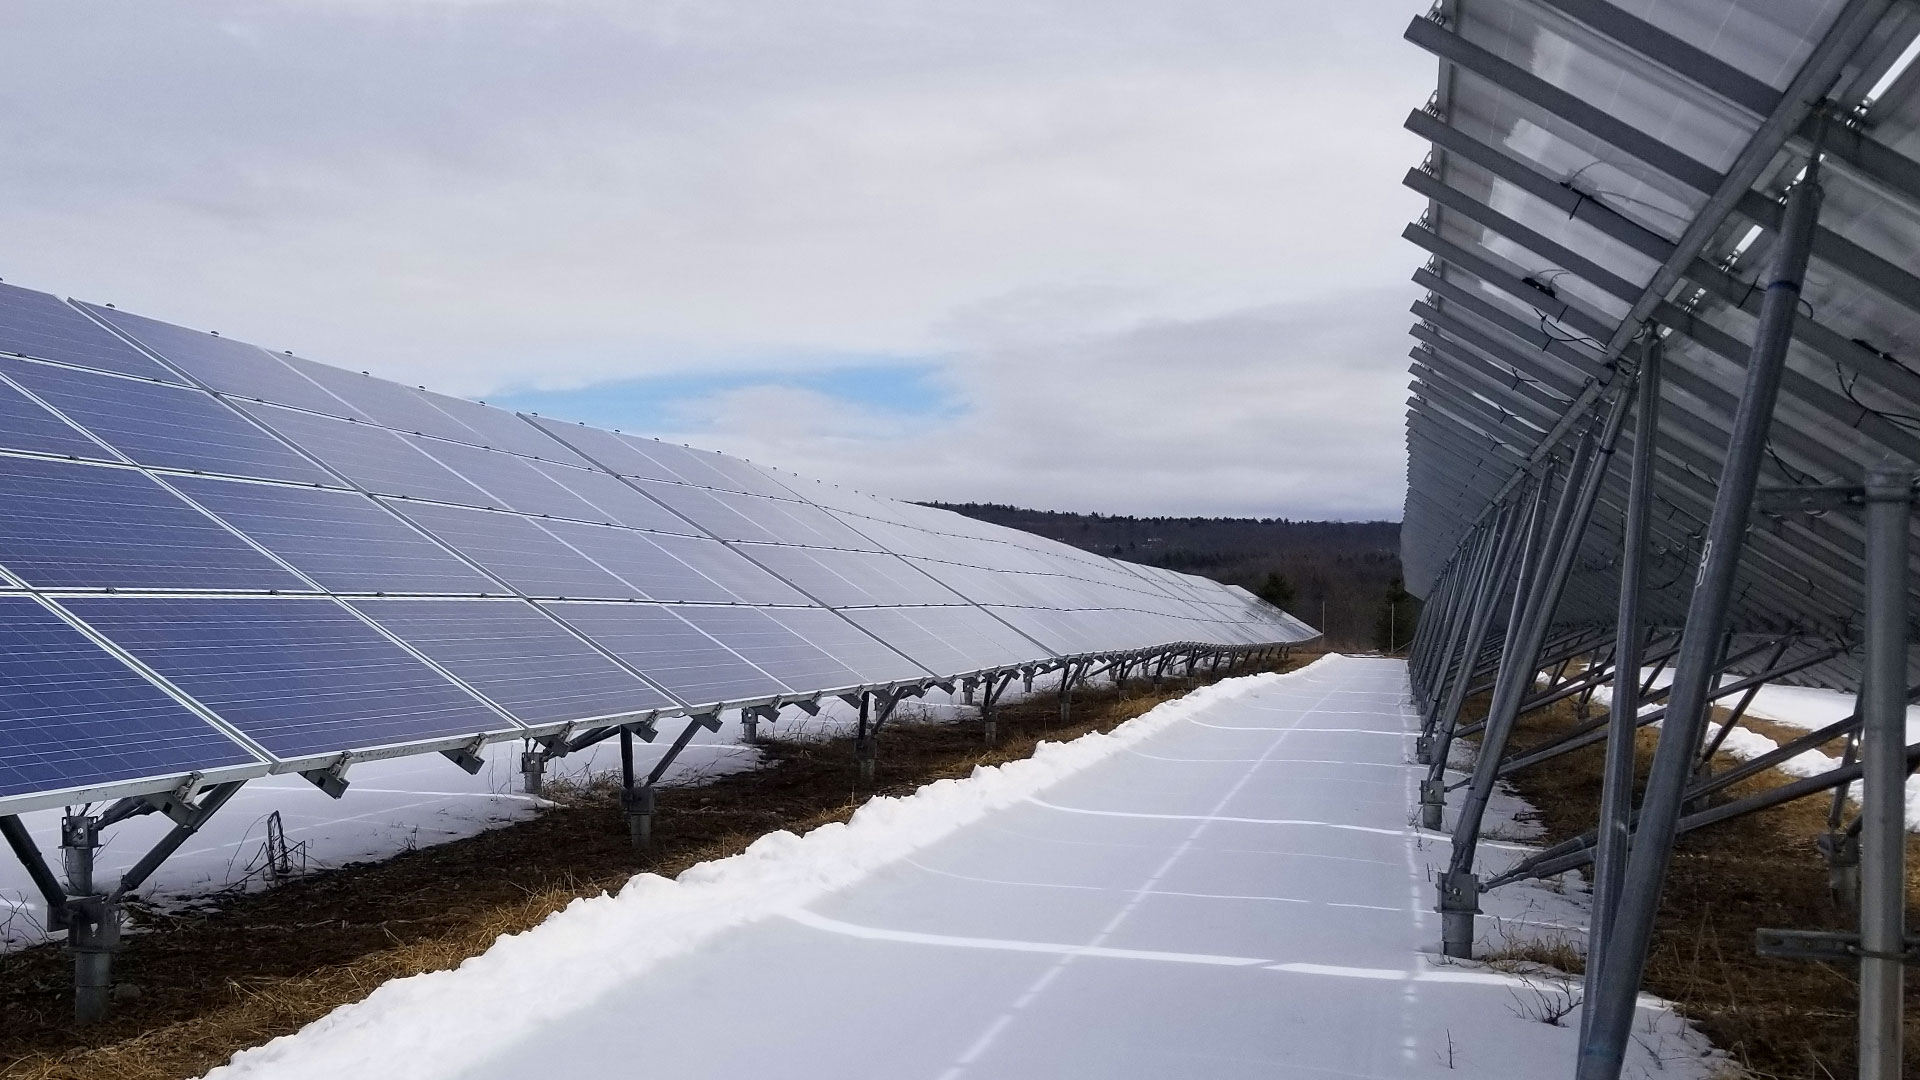 solar panels in a snow setting